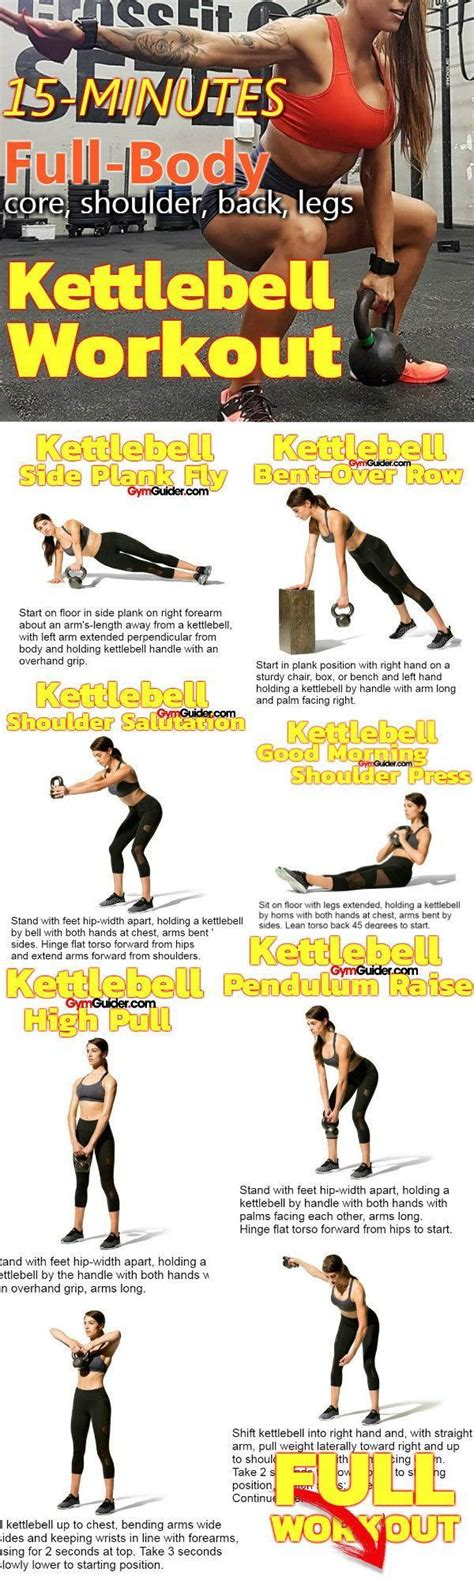 kettlebell exercises workouts workout arms training fitness body exercise toned dumbbells strength dumbbell effective most program office desk upper meaning